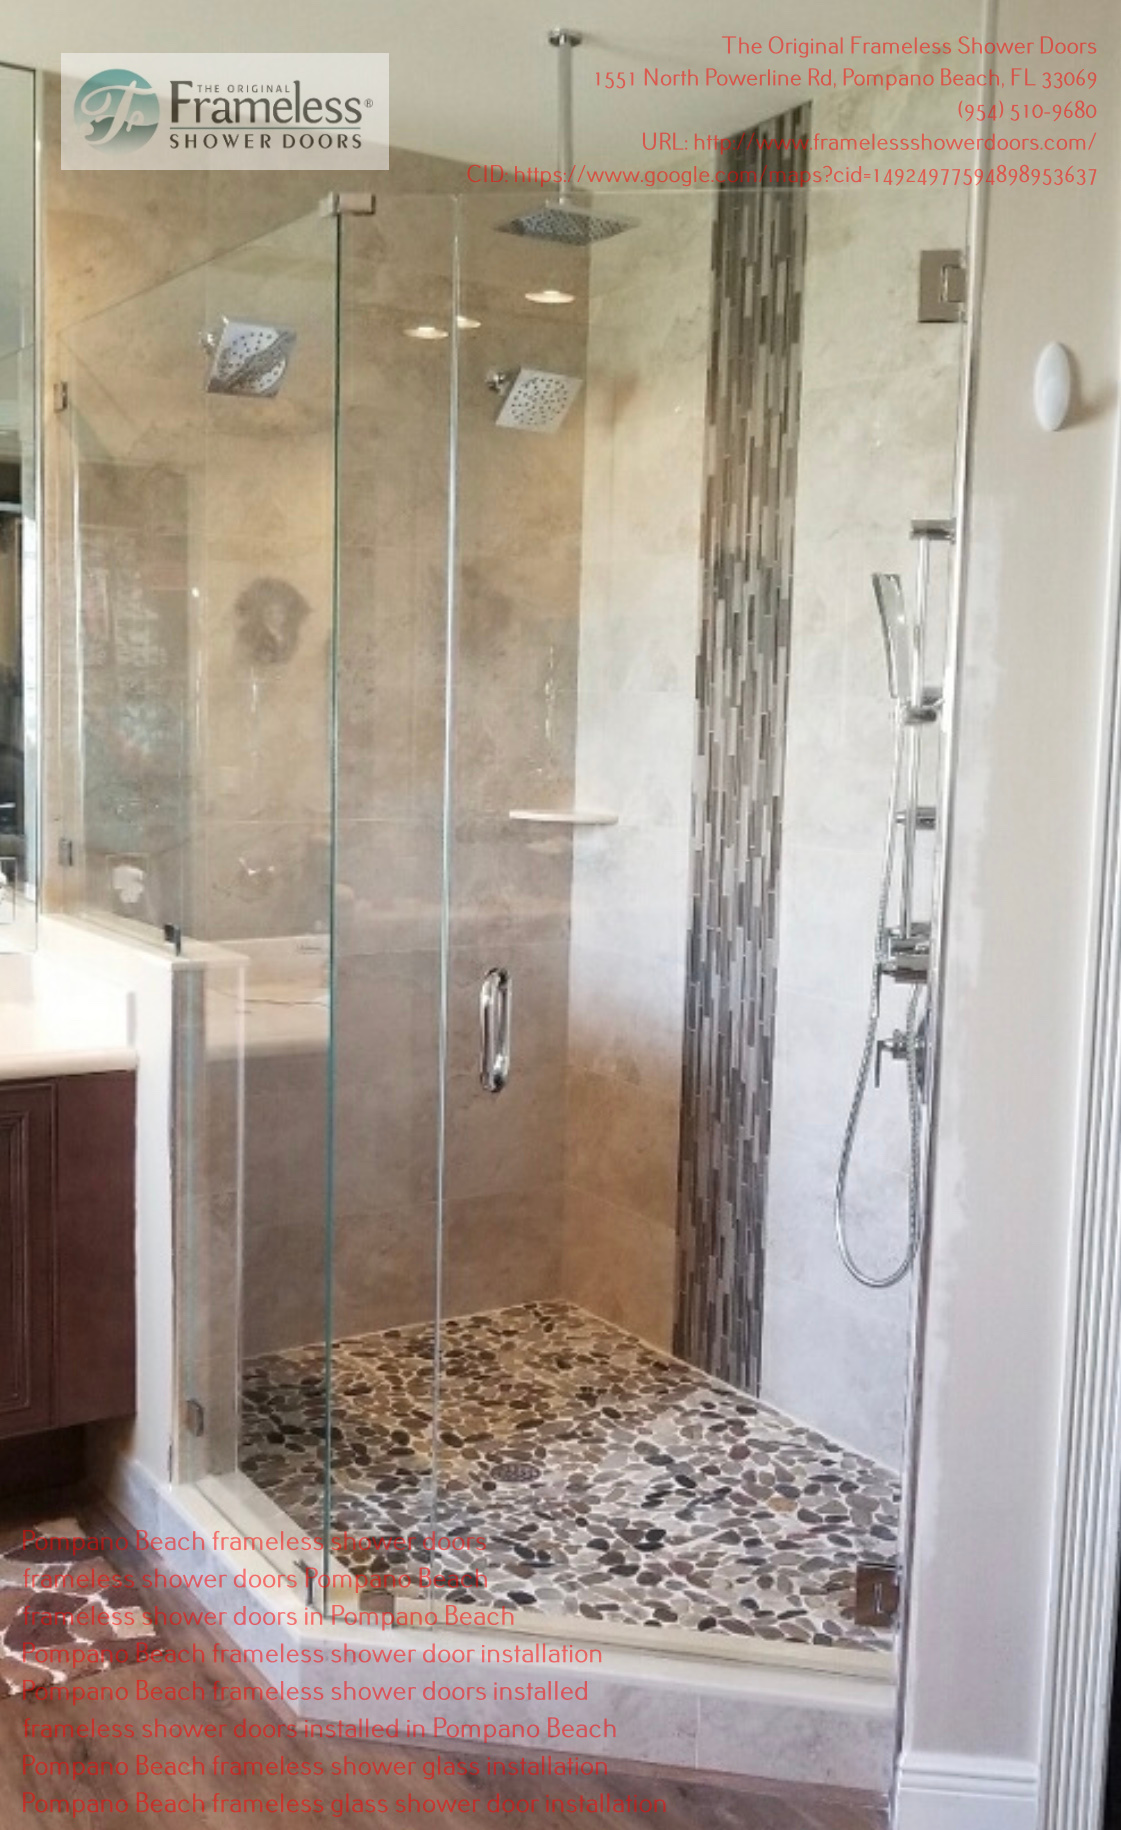 The Original Frameless Shower Doors - Pompano Beach organizes a lecture for the residents of the Pompano Beach community